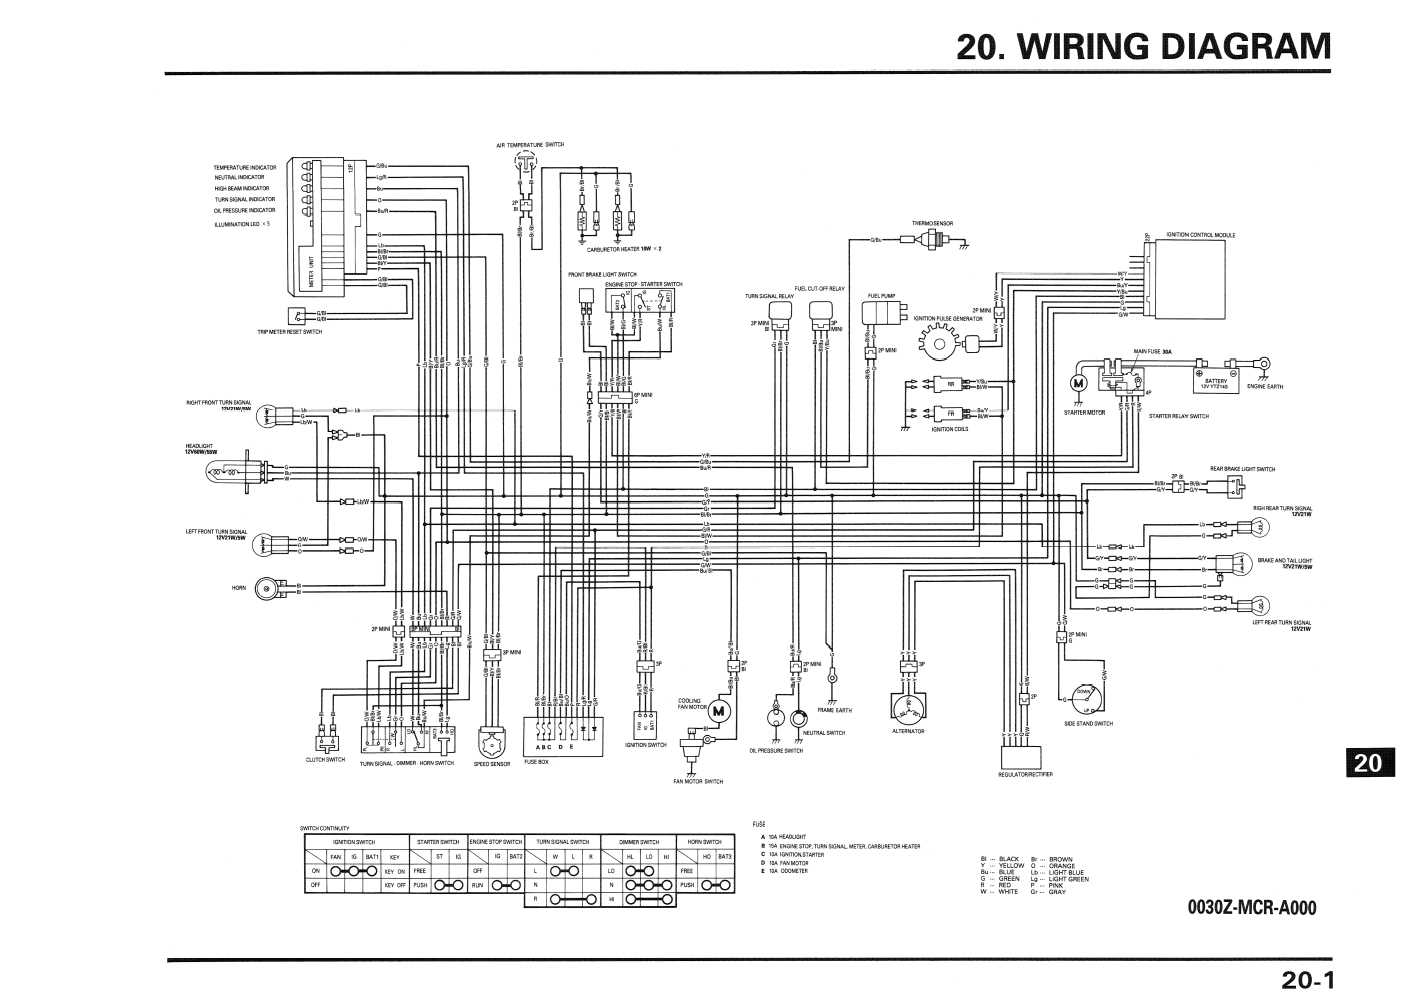 hight resolution of volvo vhd wiring diagram wiring library cat wiring diagrams volvo vhd wiring diagram